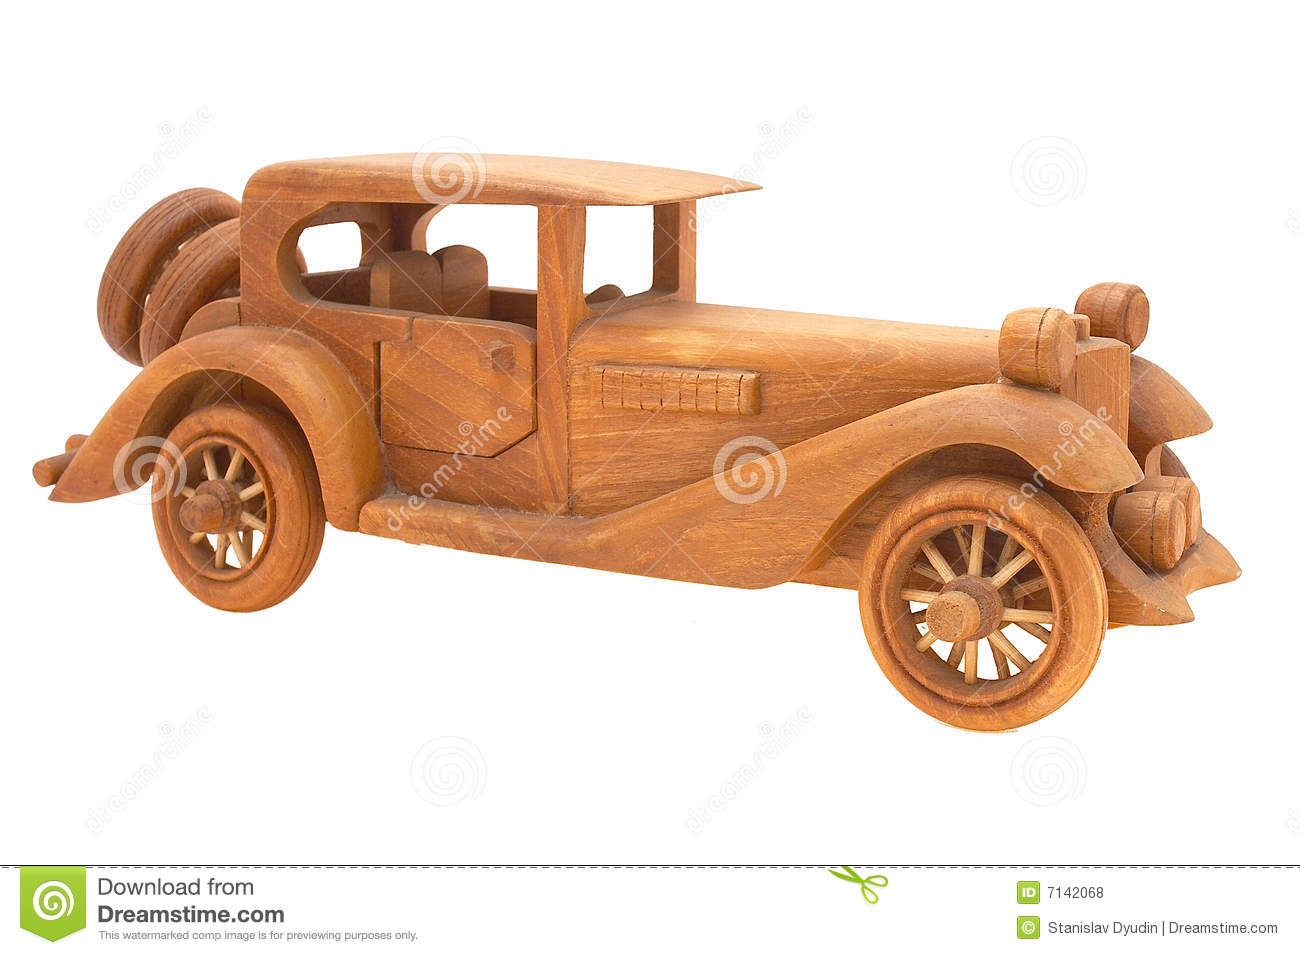 free plans for wooden toy trains | Woodworking Camp and Plans